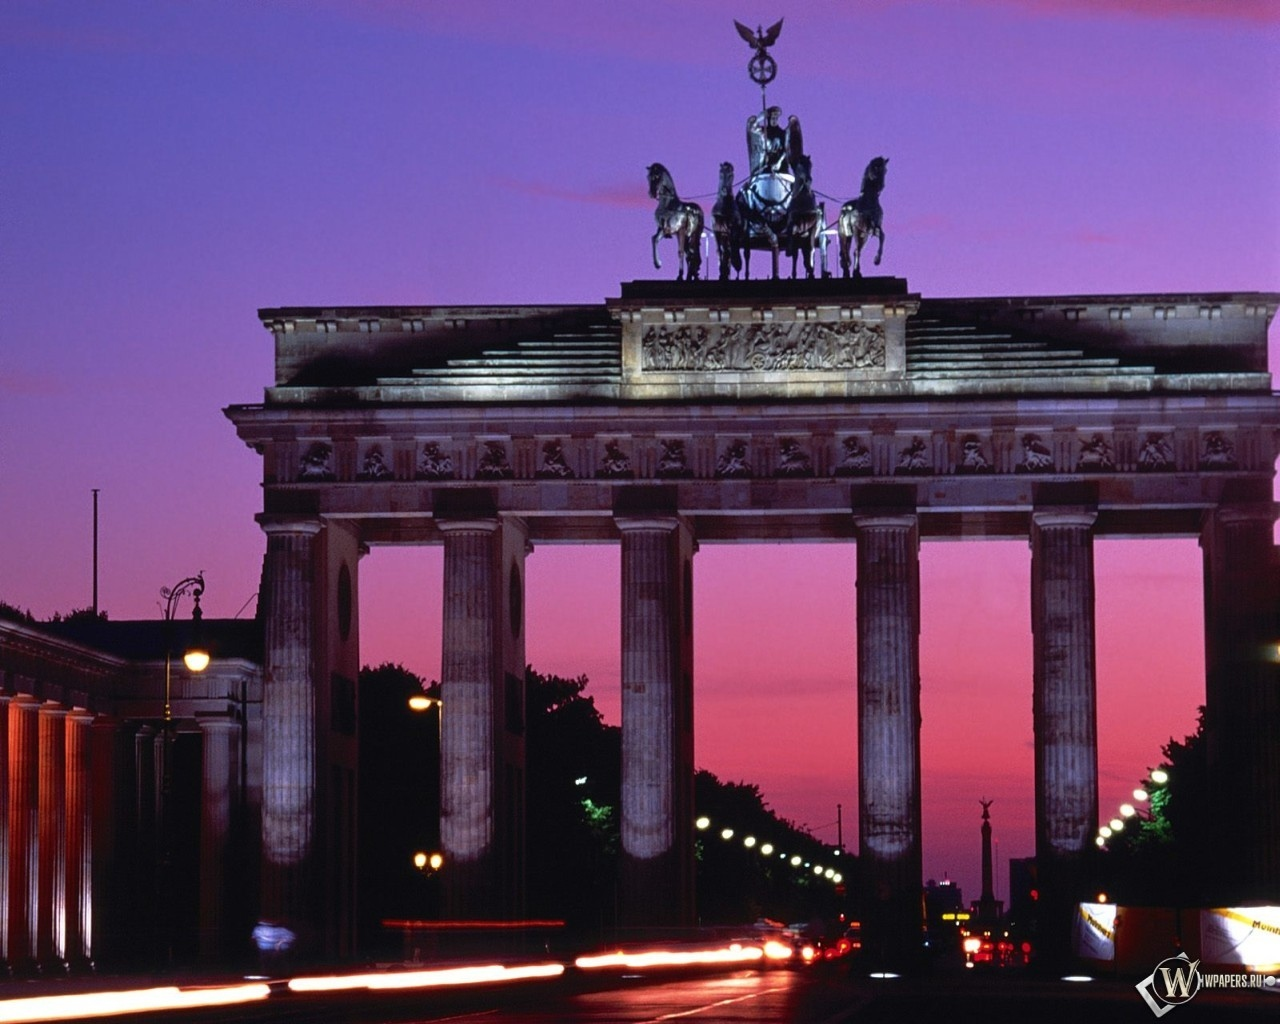 Brandenburg Gate - Berlin - Germany 1280x1024